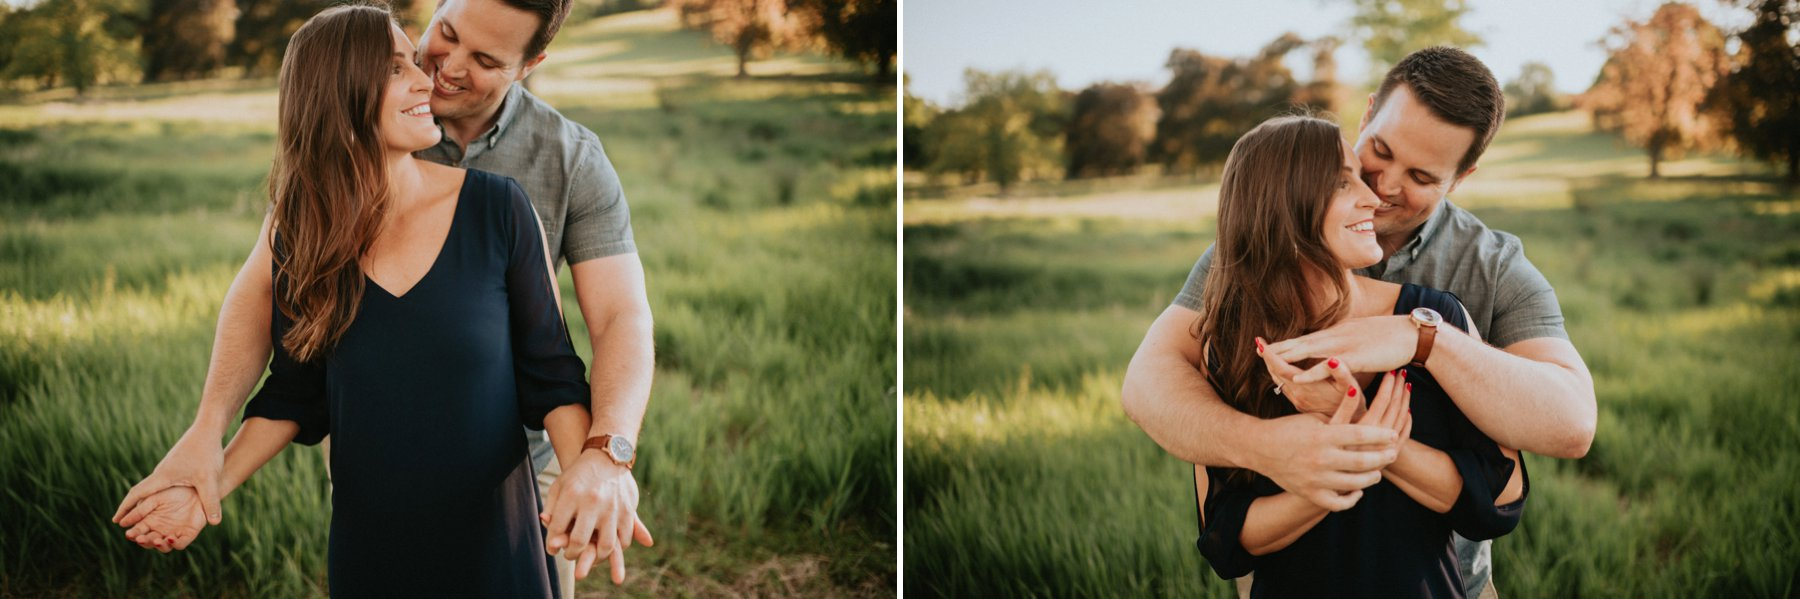 Newtown-square-engagement-session-7.jpg